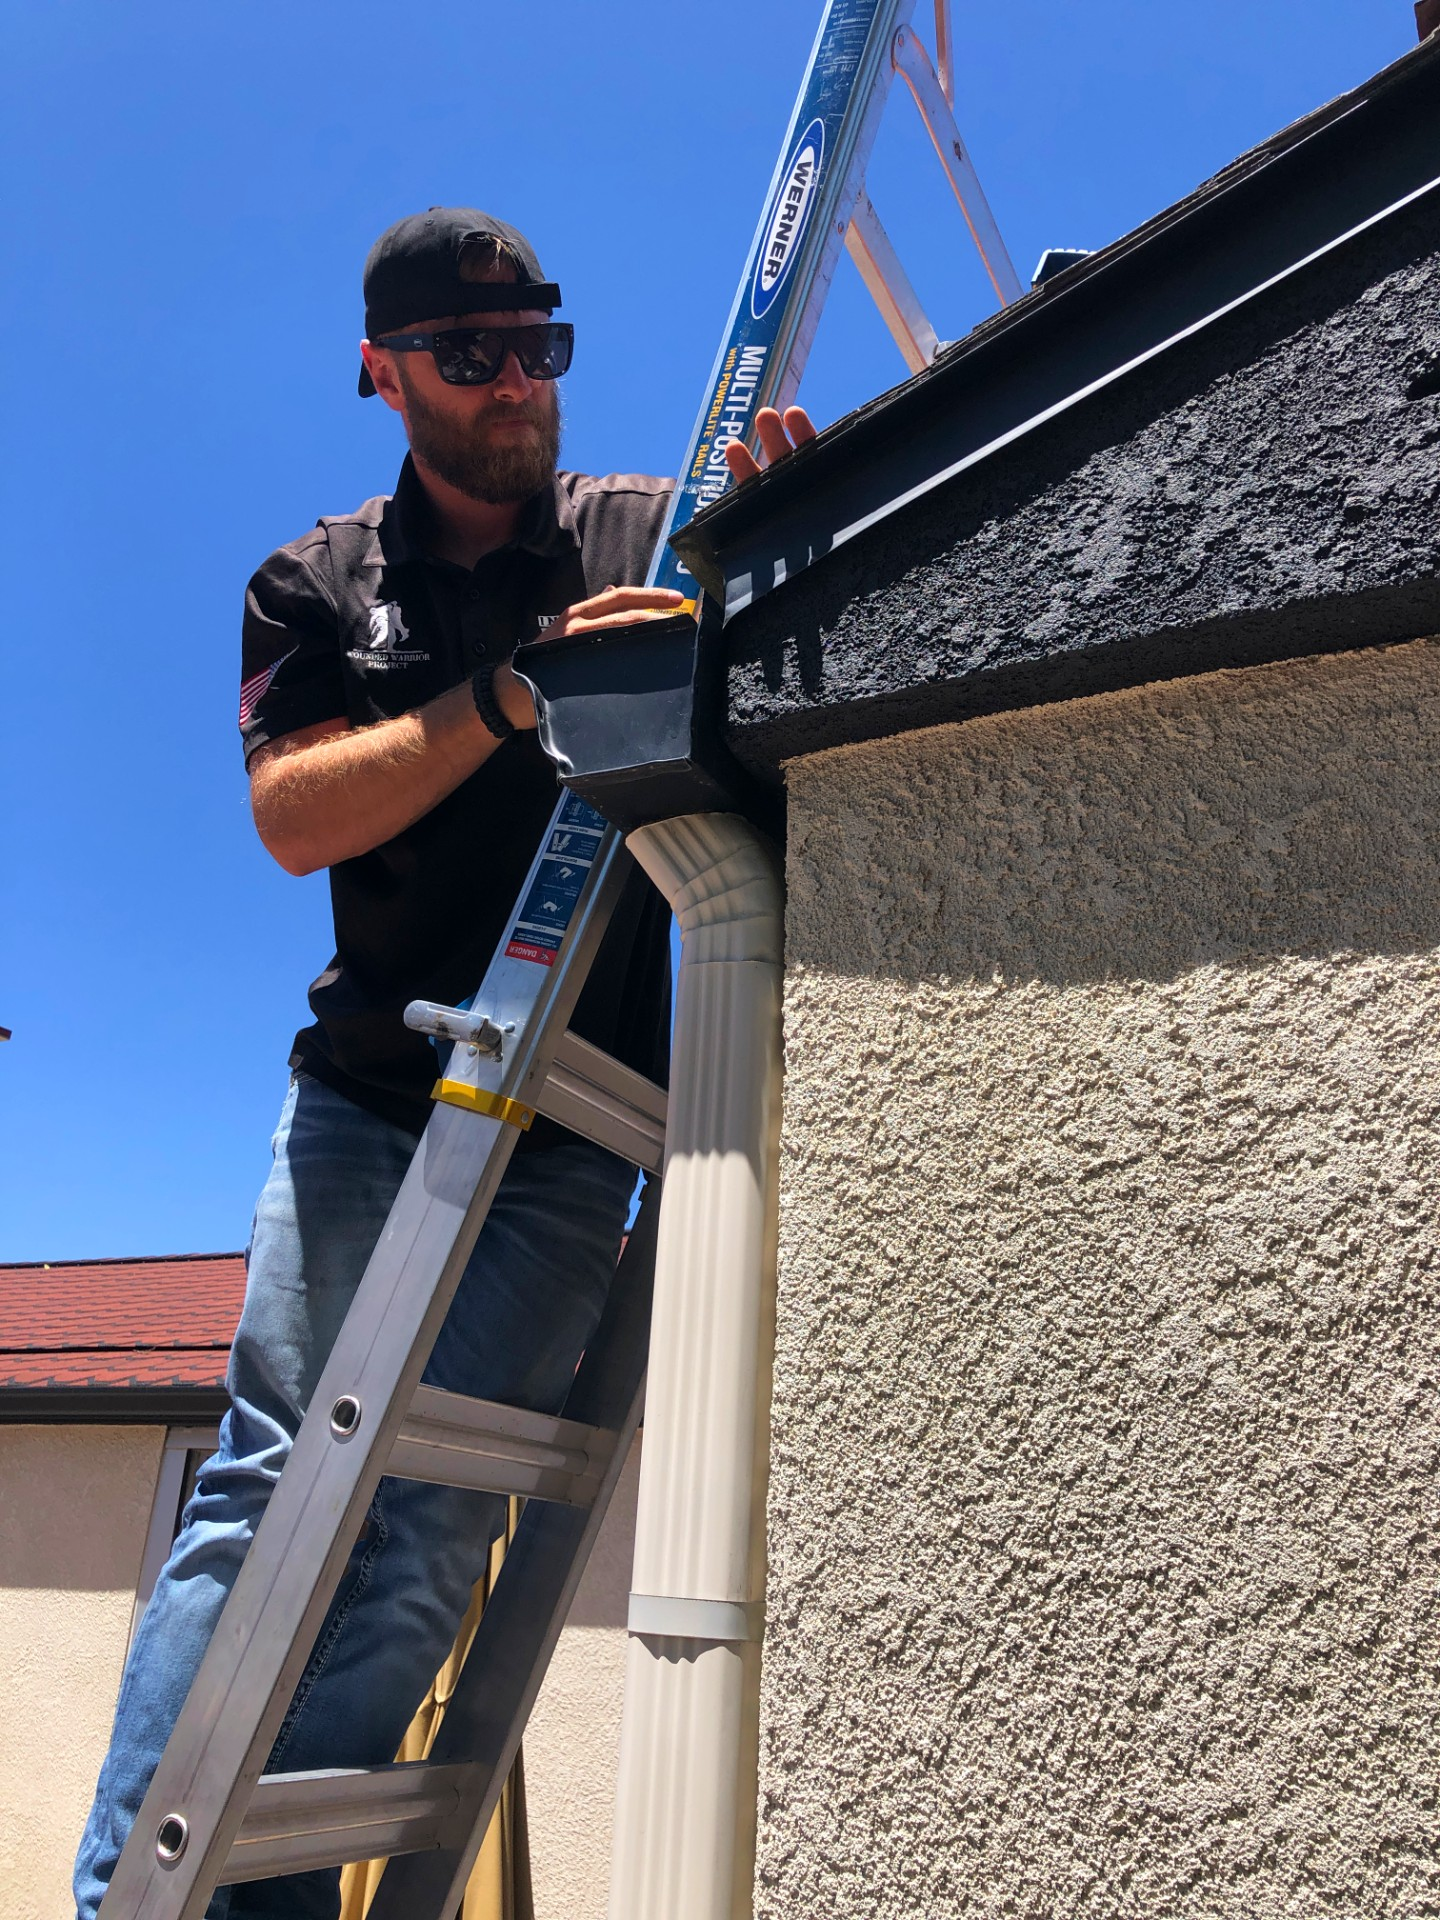 Inspecting roof on ladder